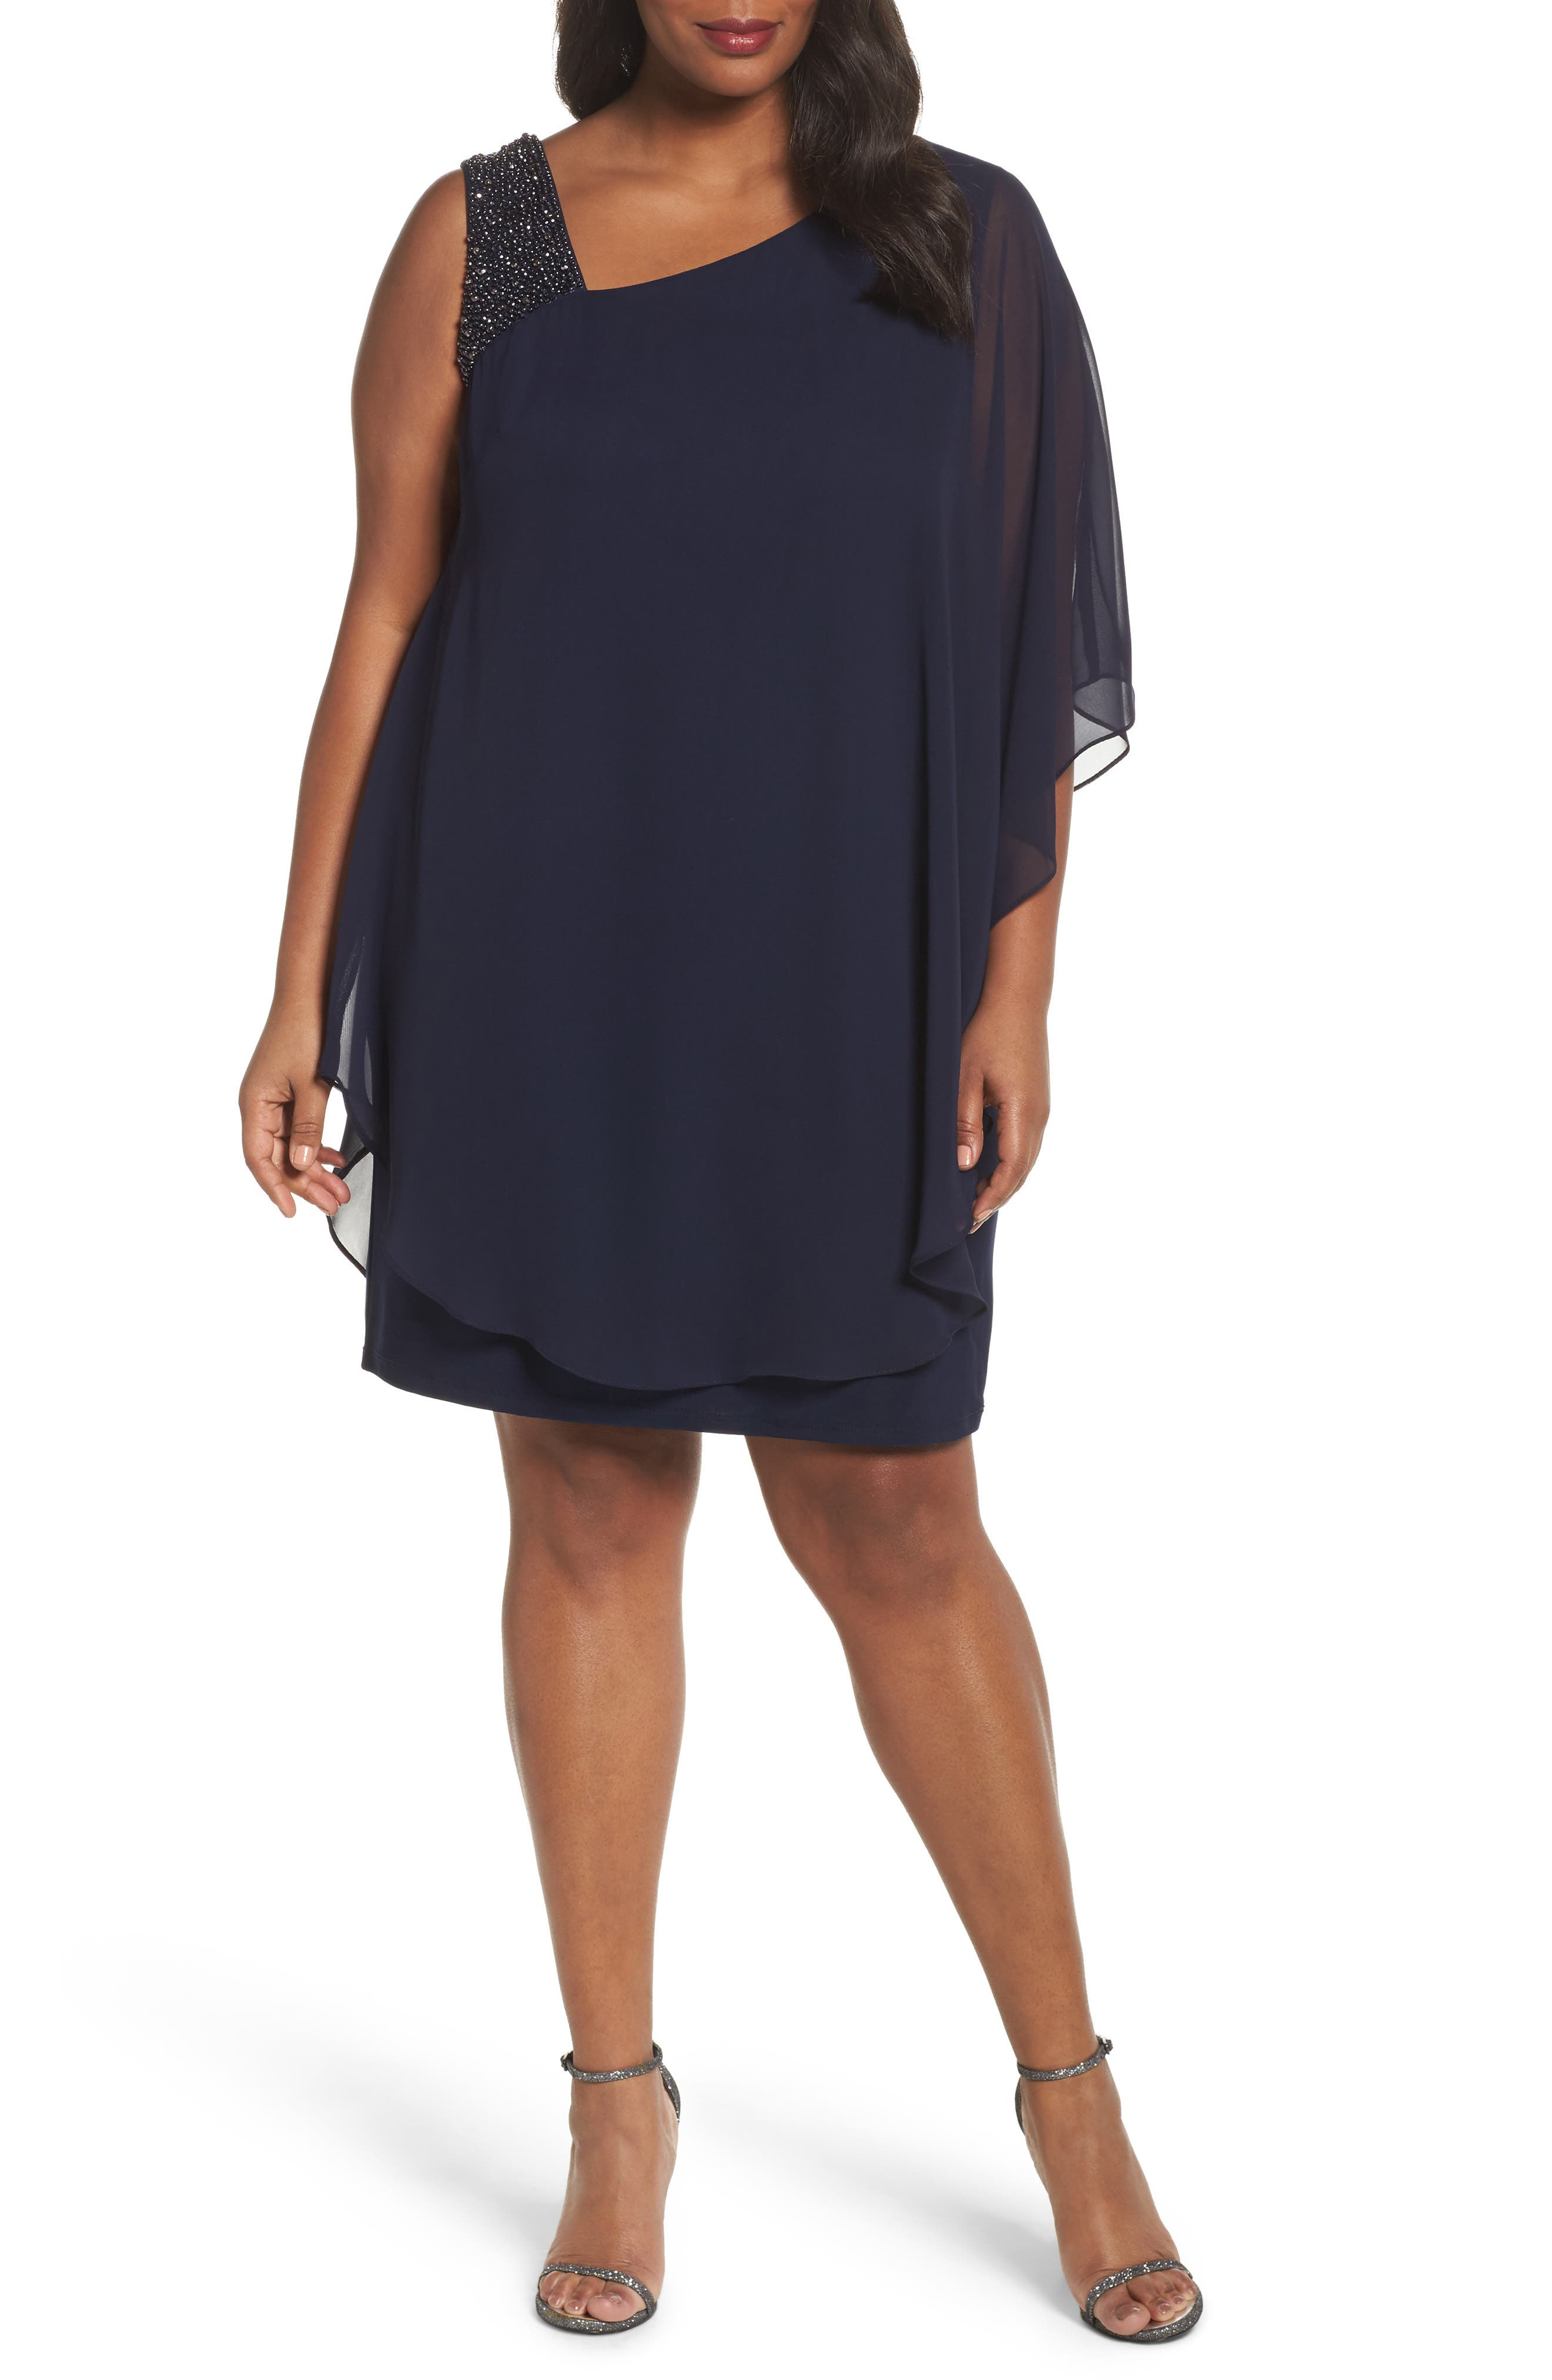 Main Image - Xscape Embellished One-Shoulder Overlay Cocktail Dress (Plus Size)